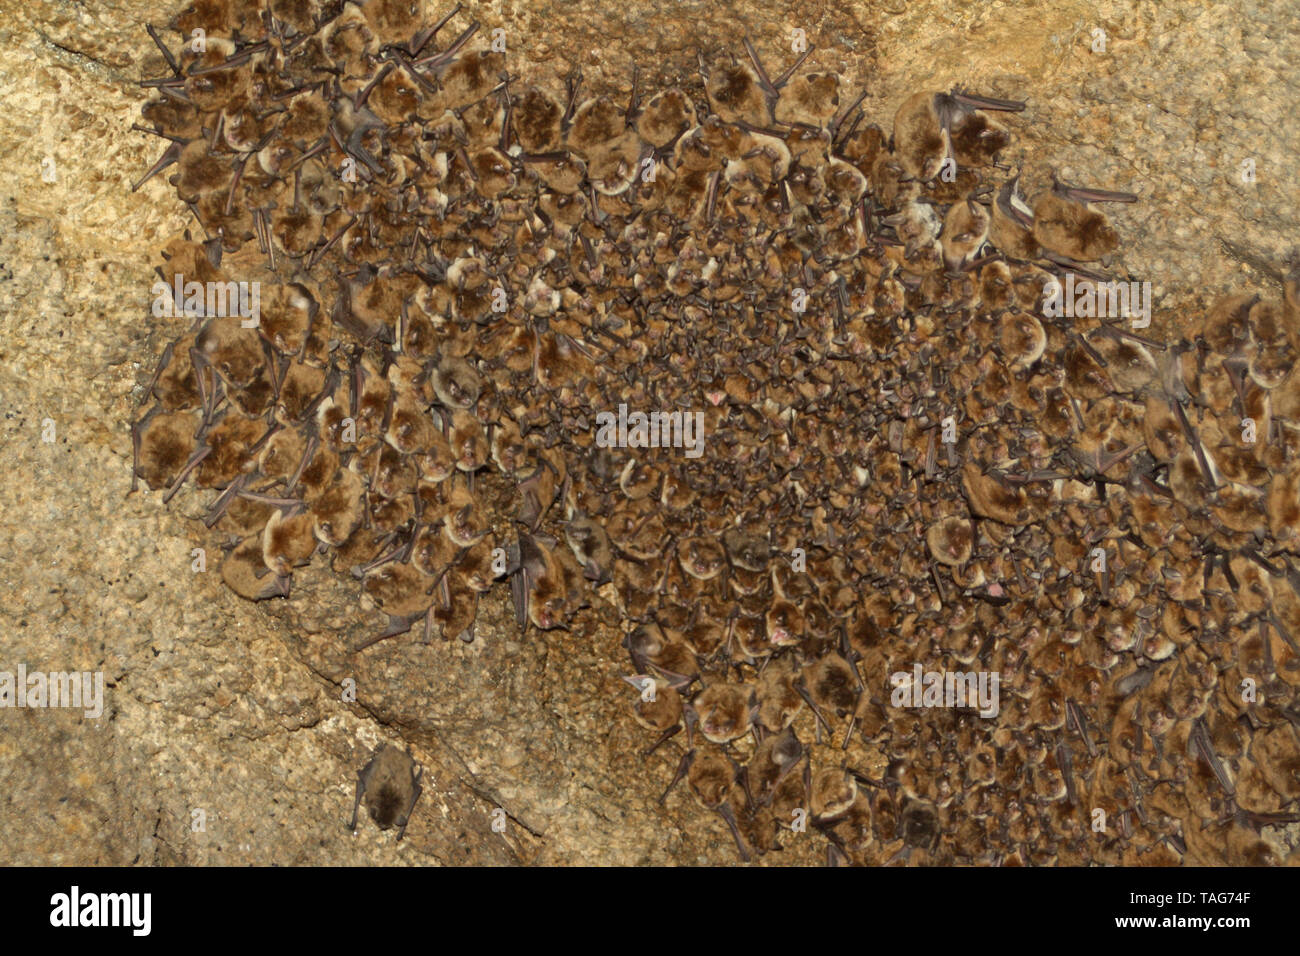 A California Myotis Bat Colony (Myotis californicus) on the roof of a cave in Southern California. - Stock Image